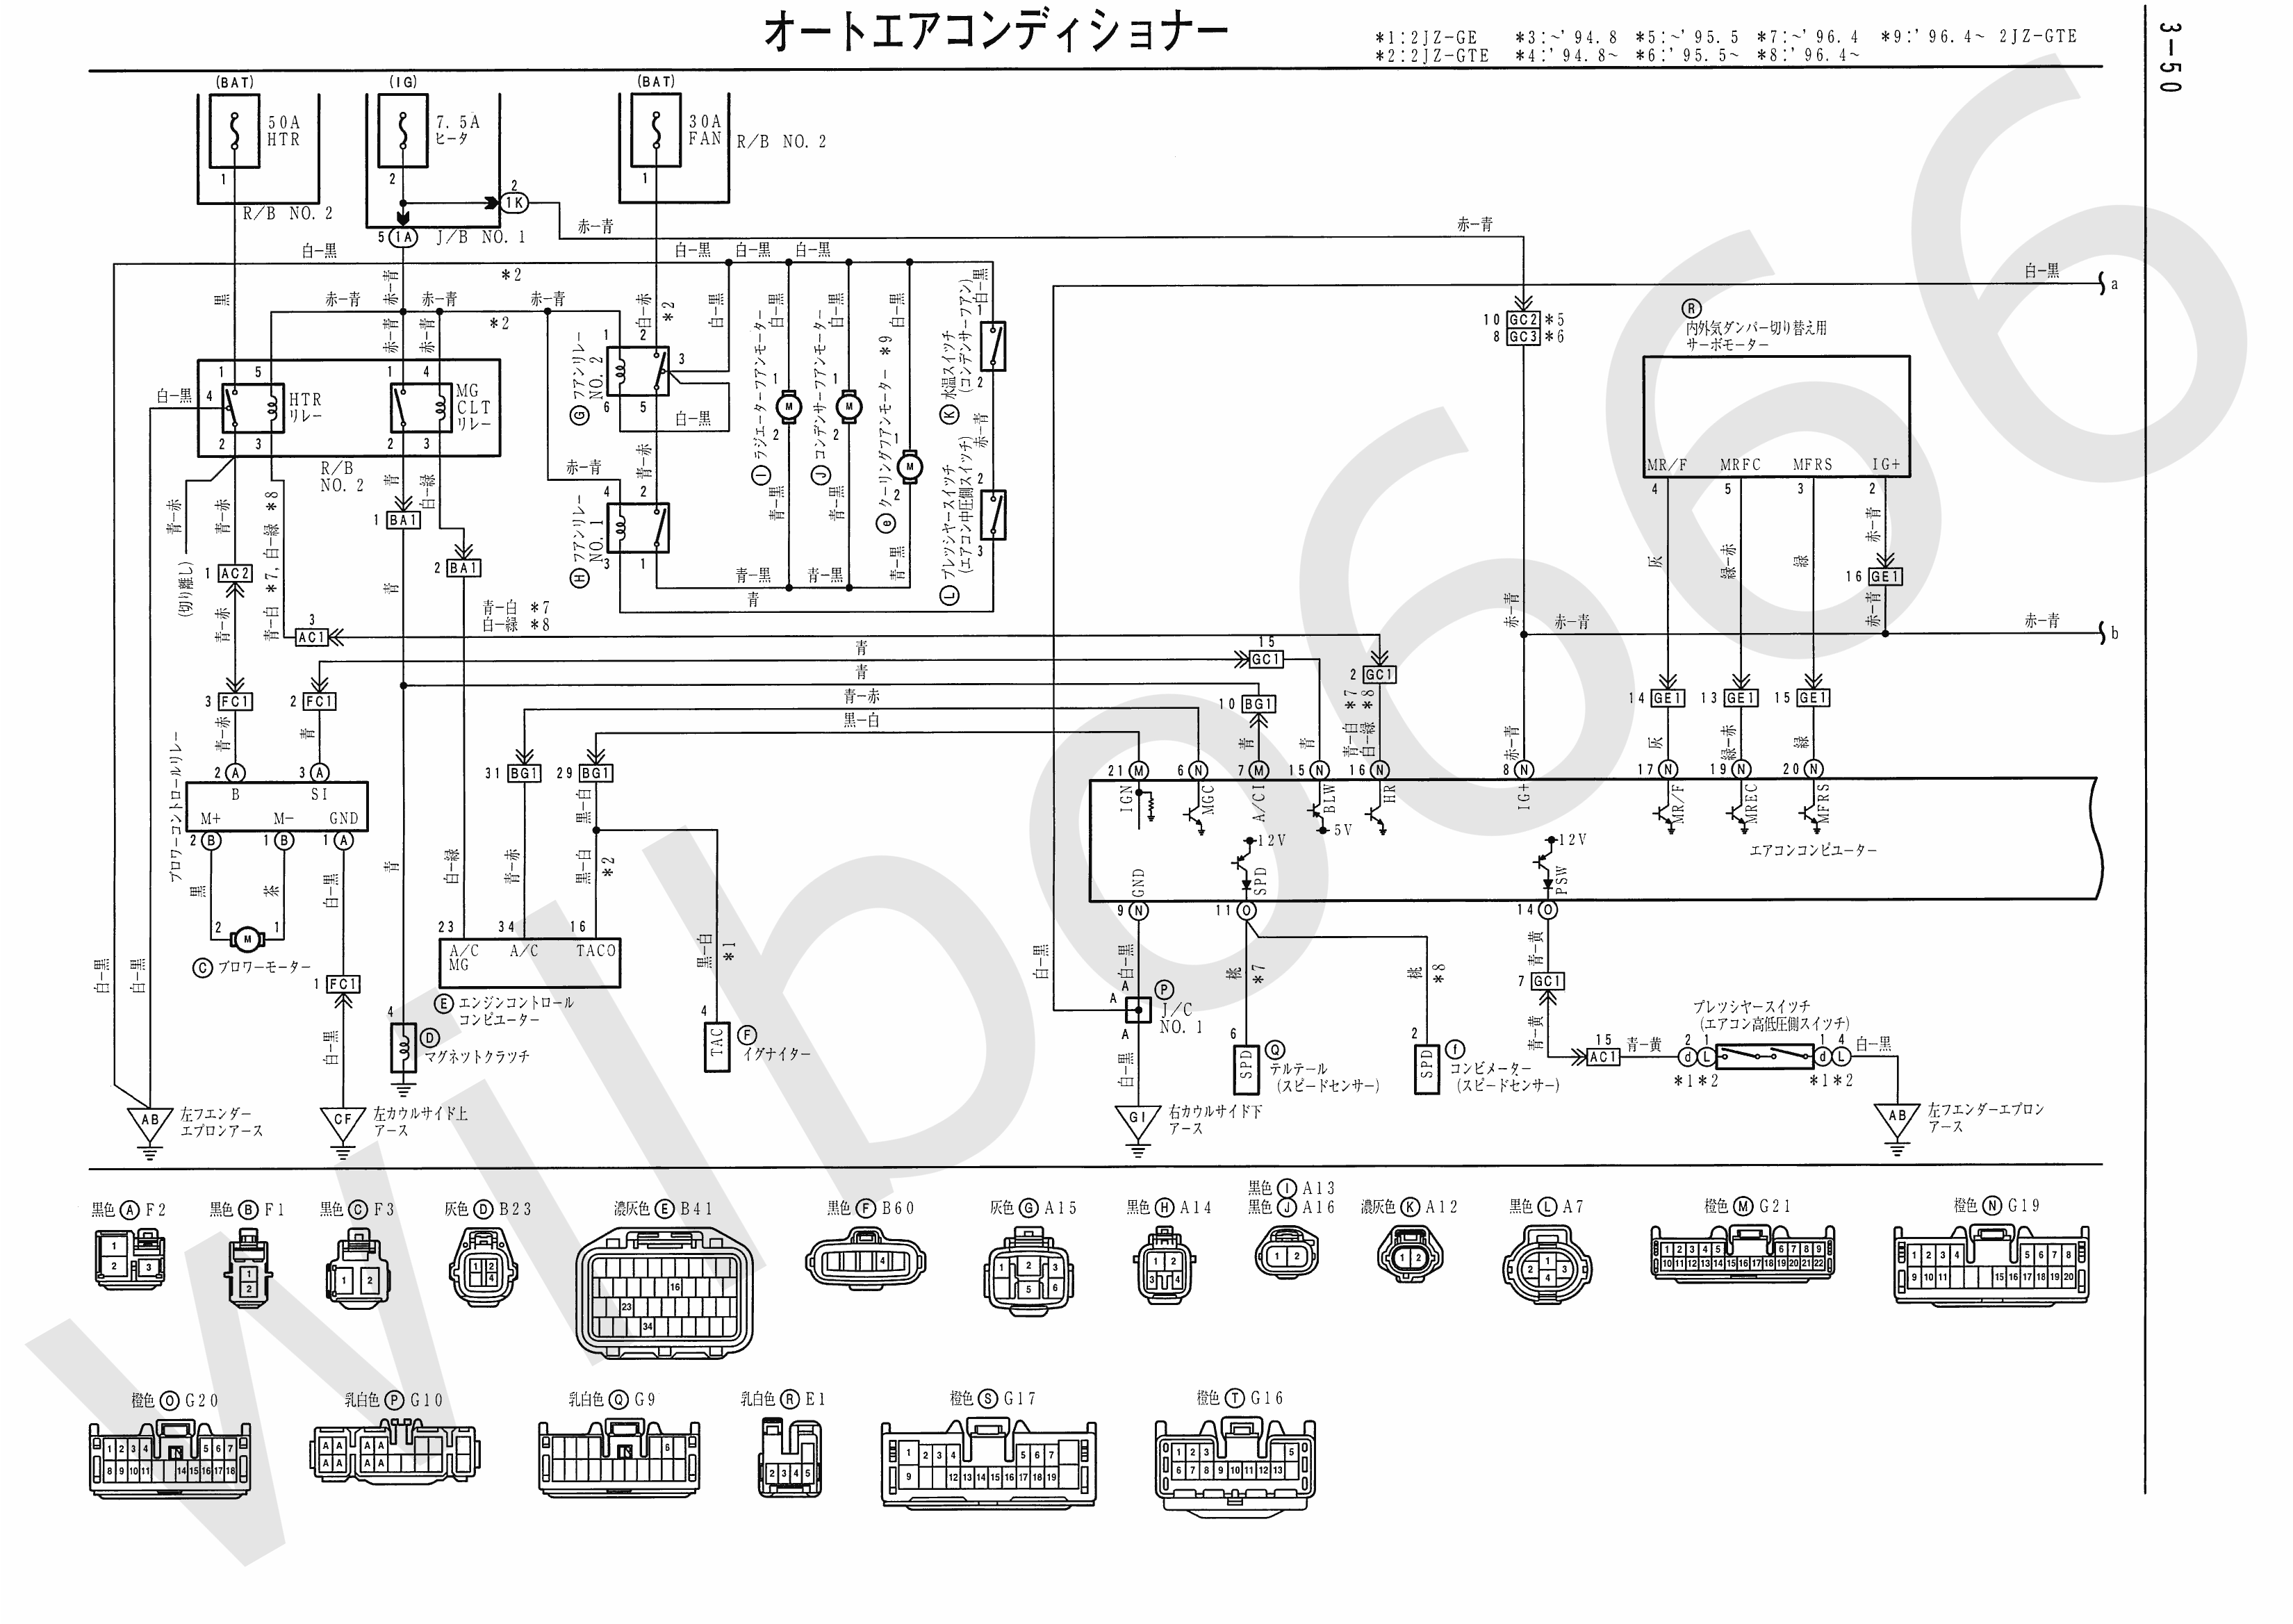 JZA80 Electrical Wiring Diagram 6742505 3 50 wilbo666 2jz gte vvti jza80 supra engine wiring 2jzgte wiring diagram at reclaimingppi.co